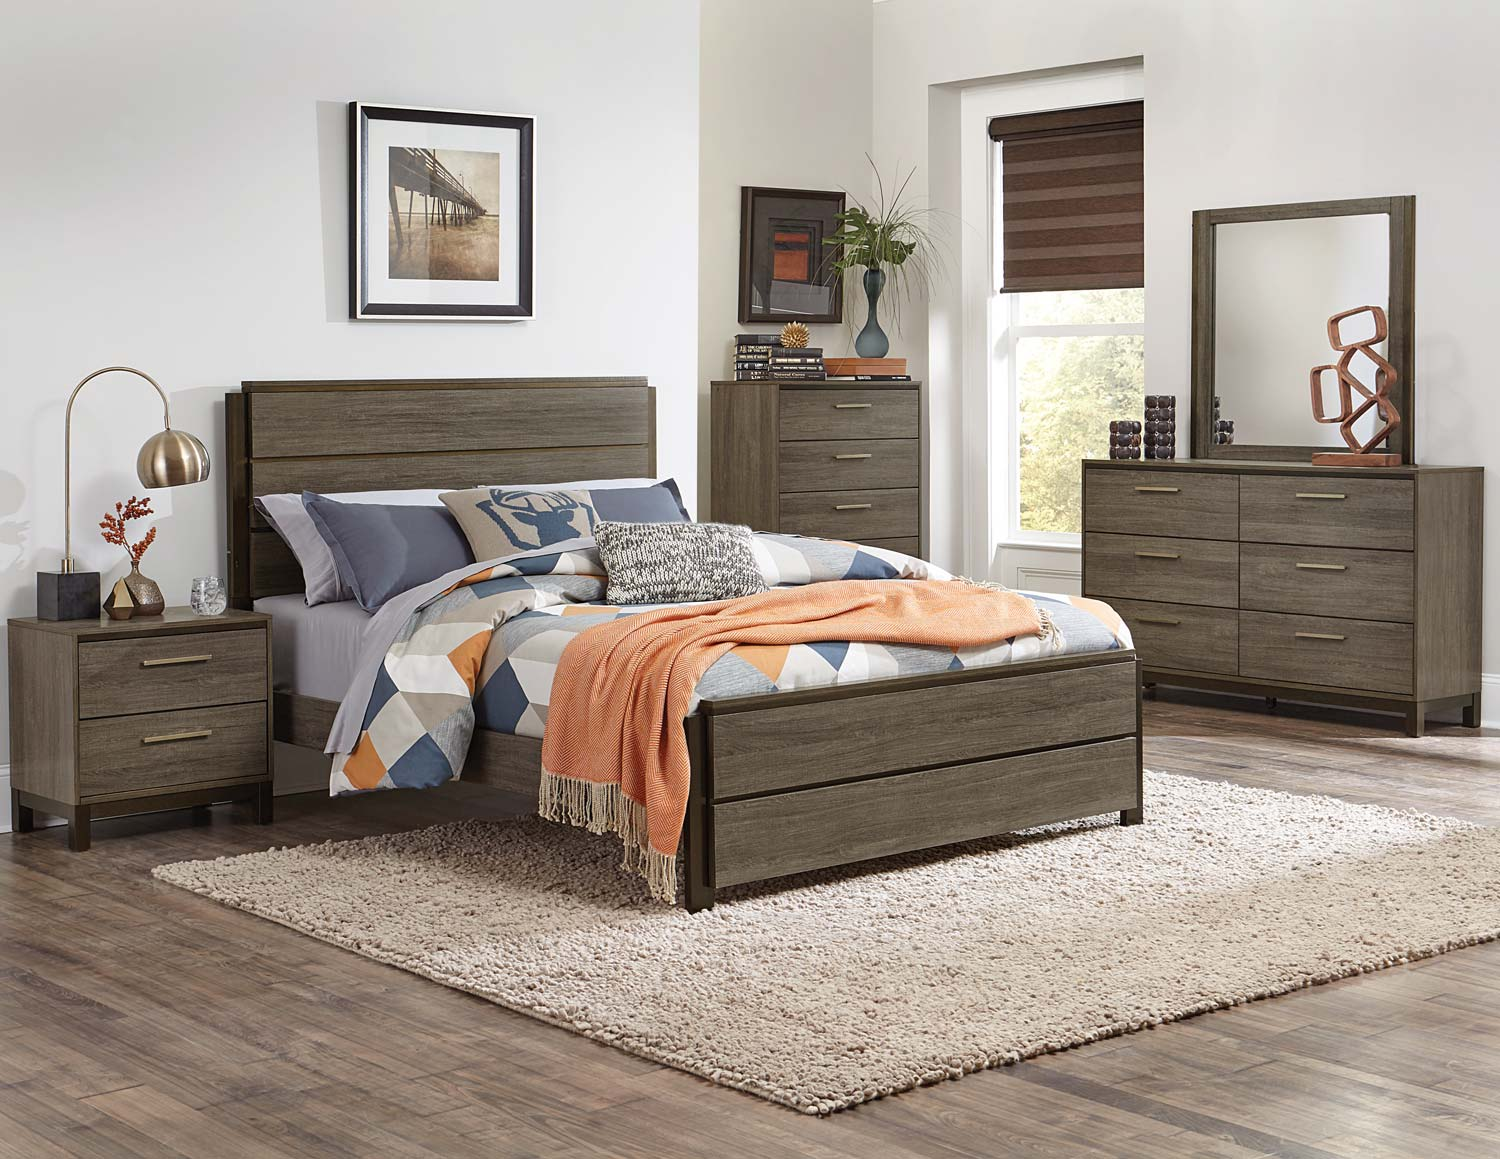 Homelegance Vestavia Panel Bedroom Set - Grey/Dark Brown